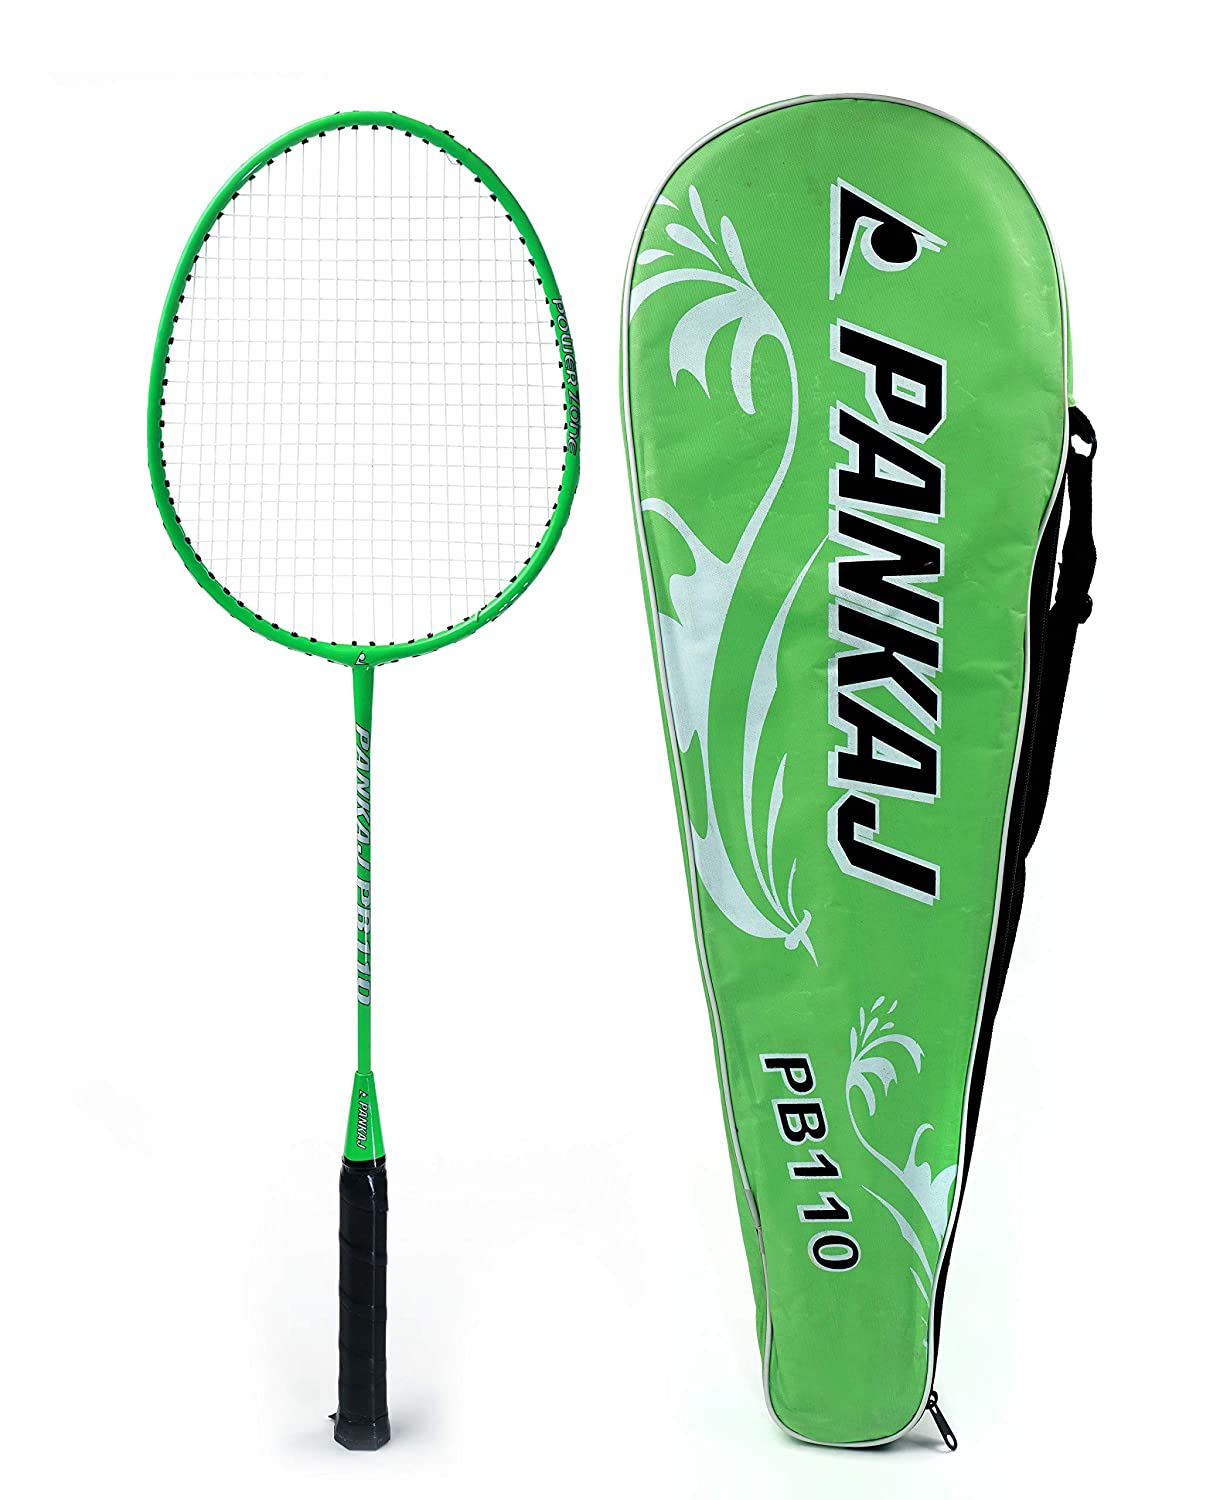 Badminton Rackets - PB 110 - Pack for 2 (Green)